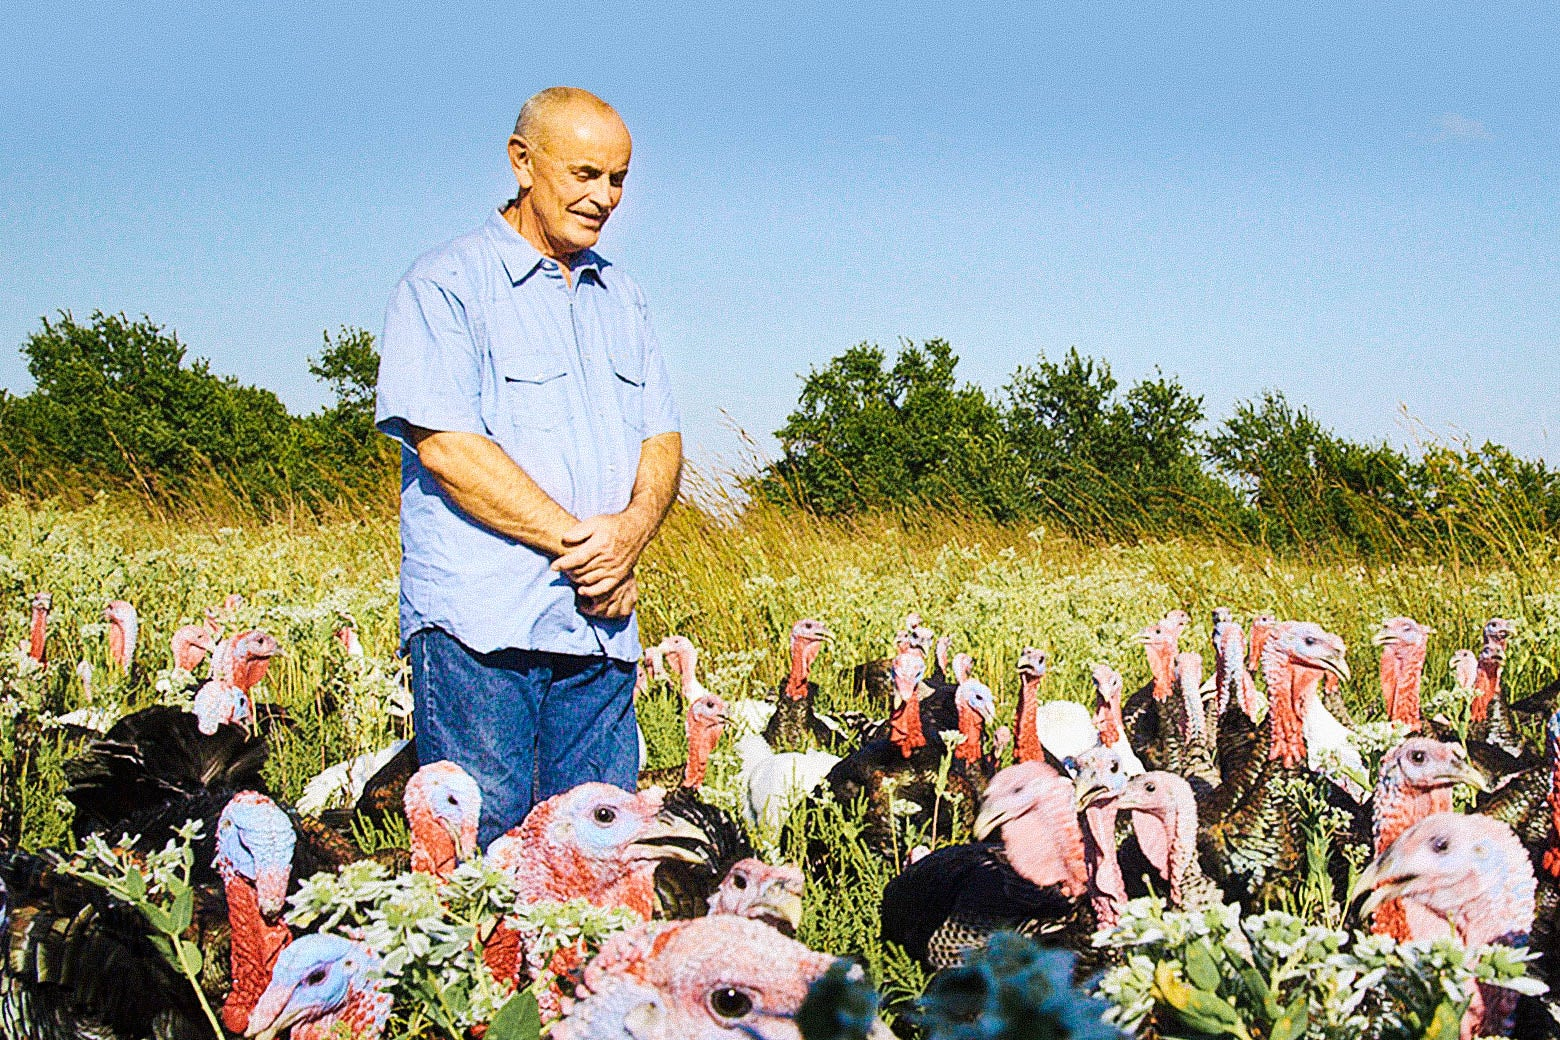 Still from Eating Animals: A man stands among turkeys in a field.